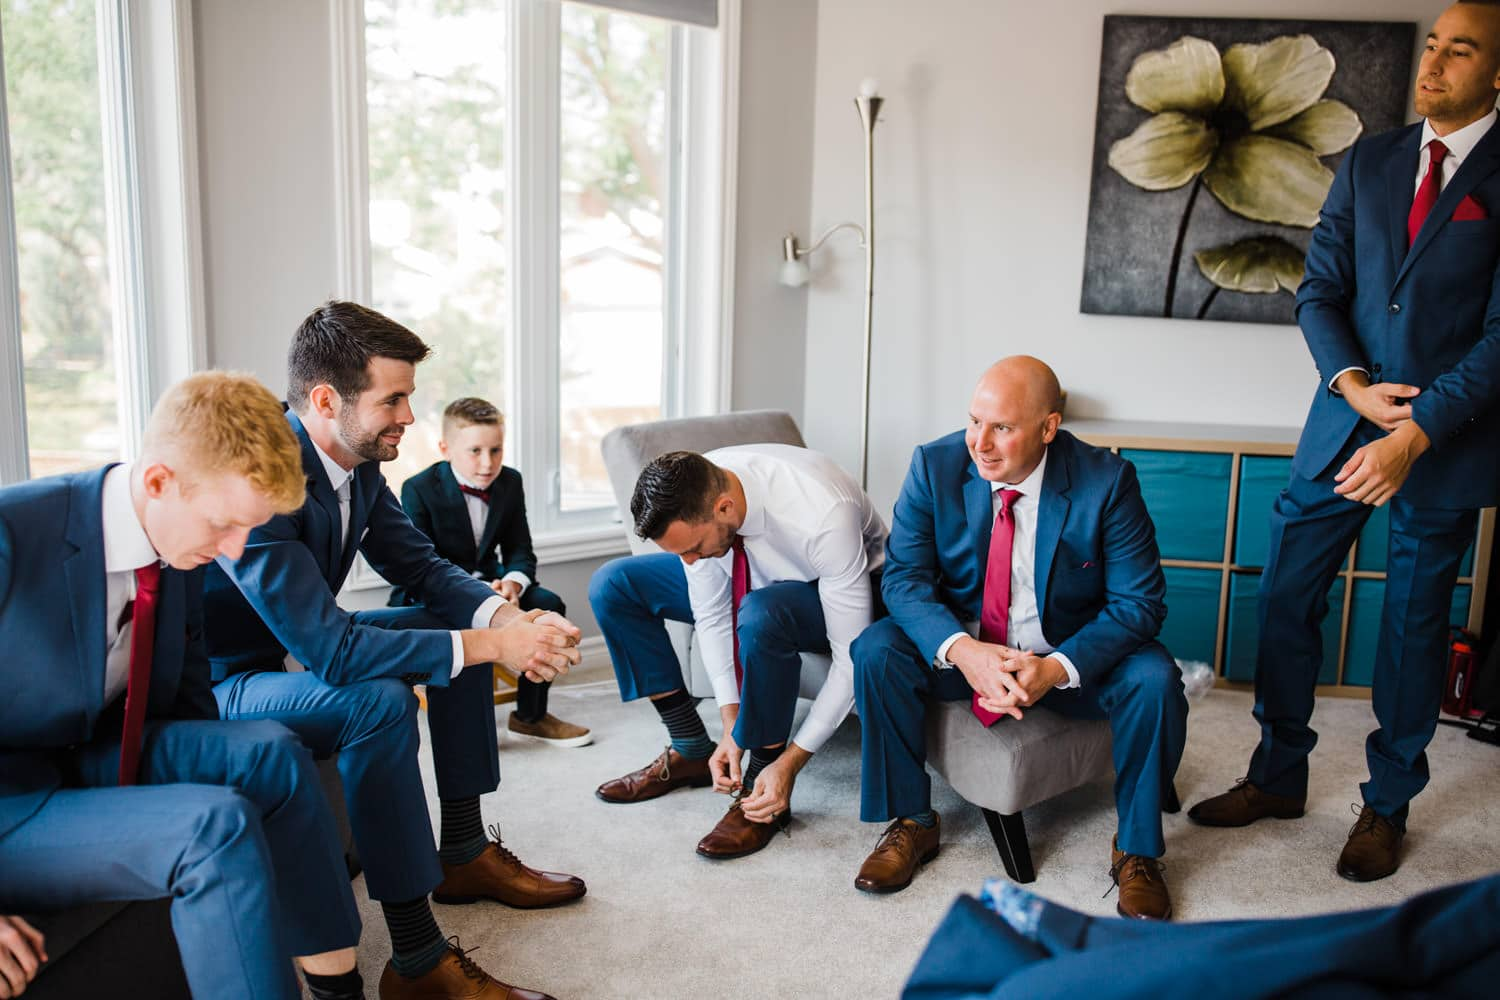 groomsman sit together and tie their shoes - groom prep